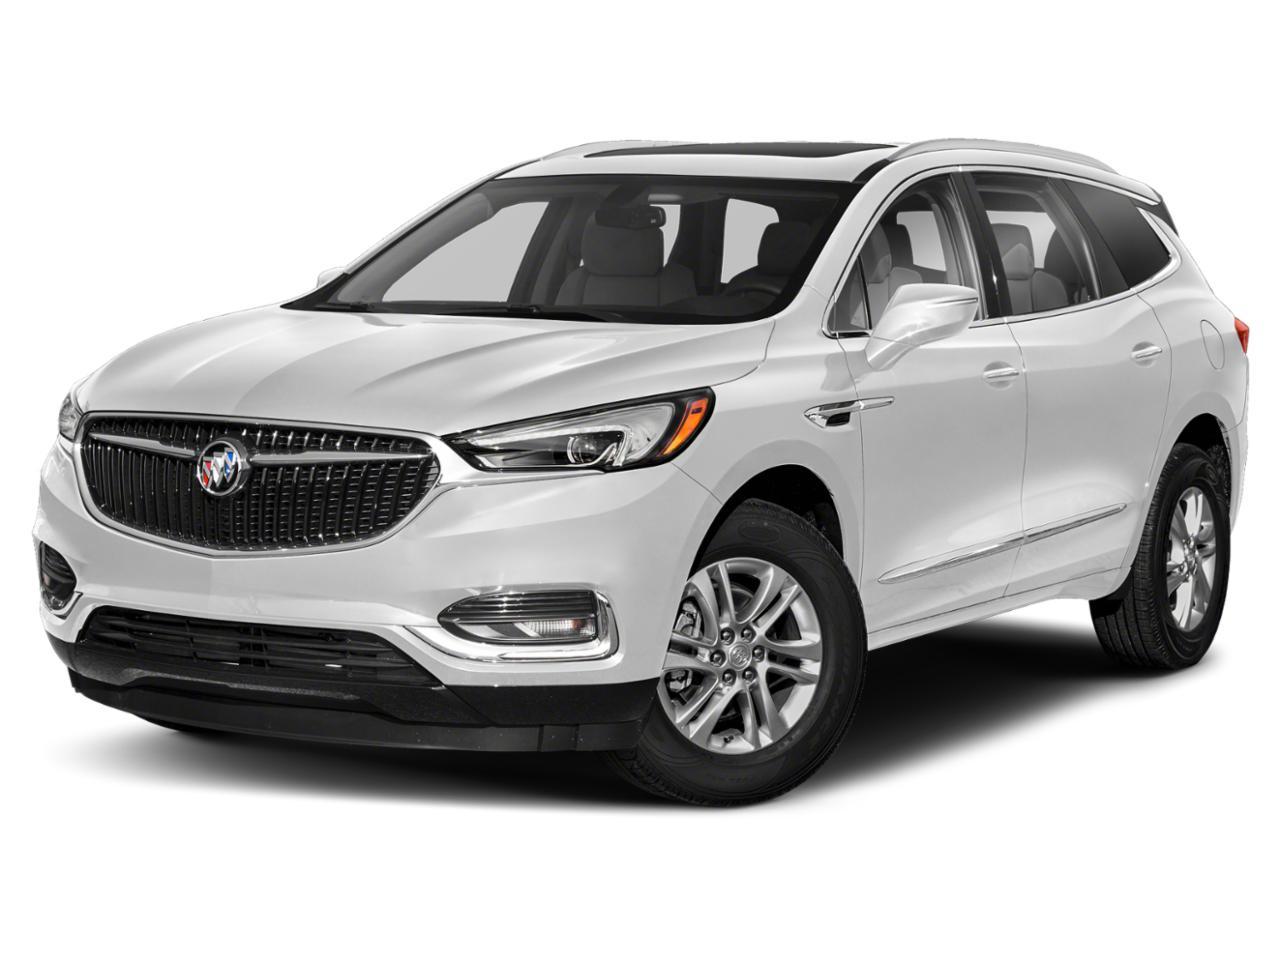 2021 Buick Enclave Vehicle Photo in Oklahoma City, OK 73114